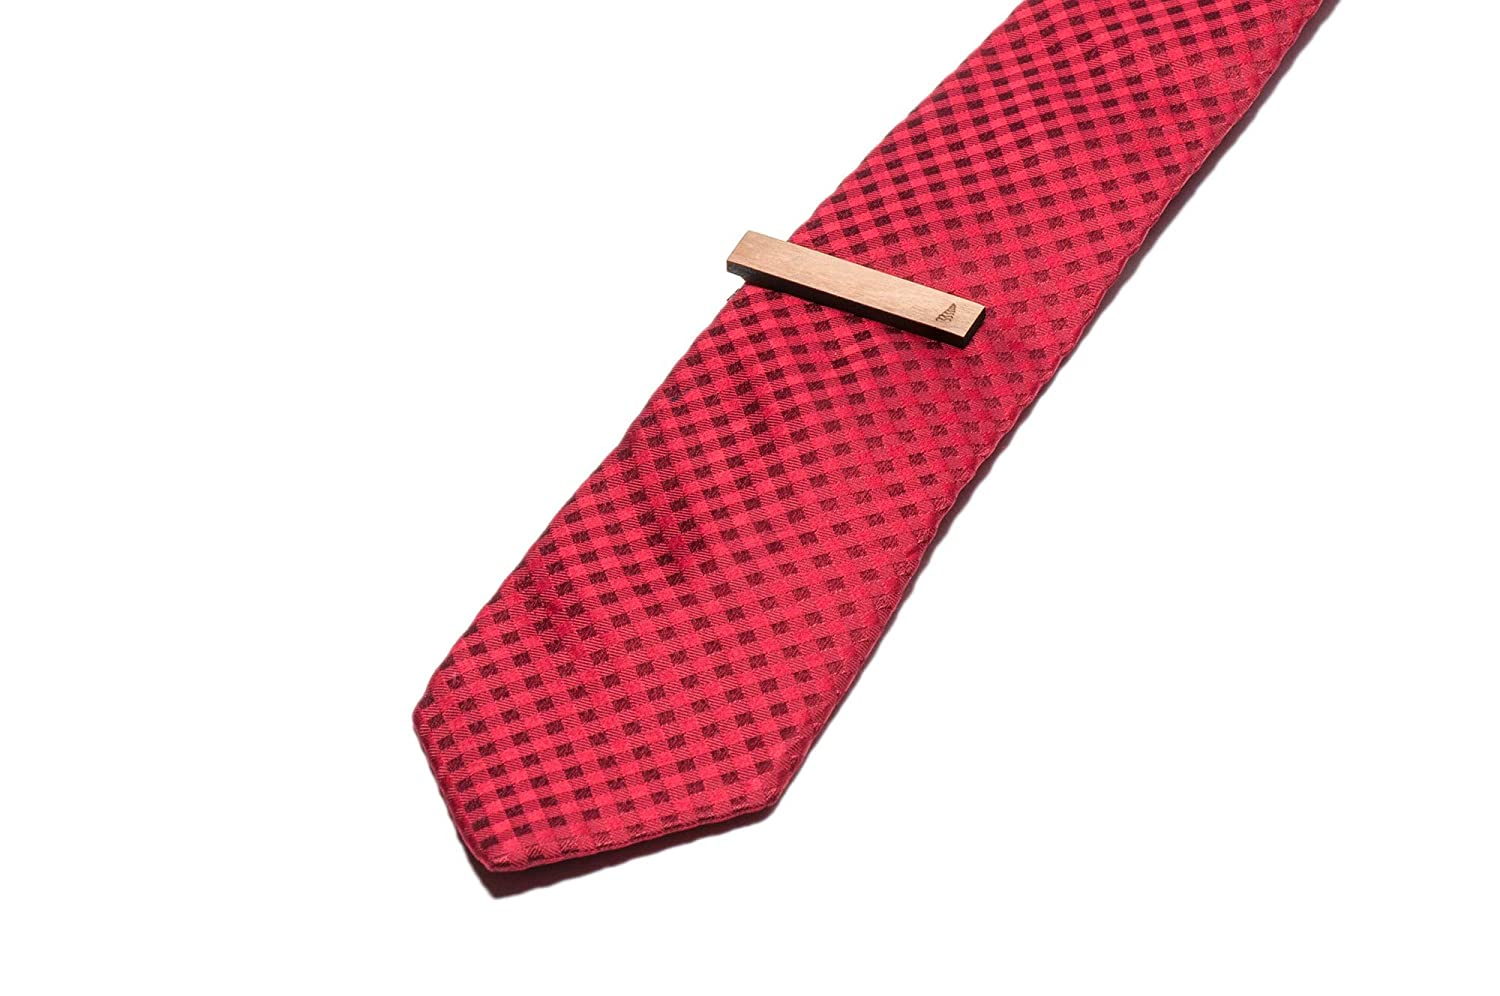 Cherry Wood Tie Bar Engraved in The USA Wooden Accessories Company Wooden Tie Clips with Laser Engraved Fabaceae Design